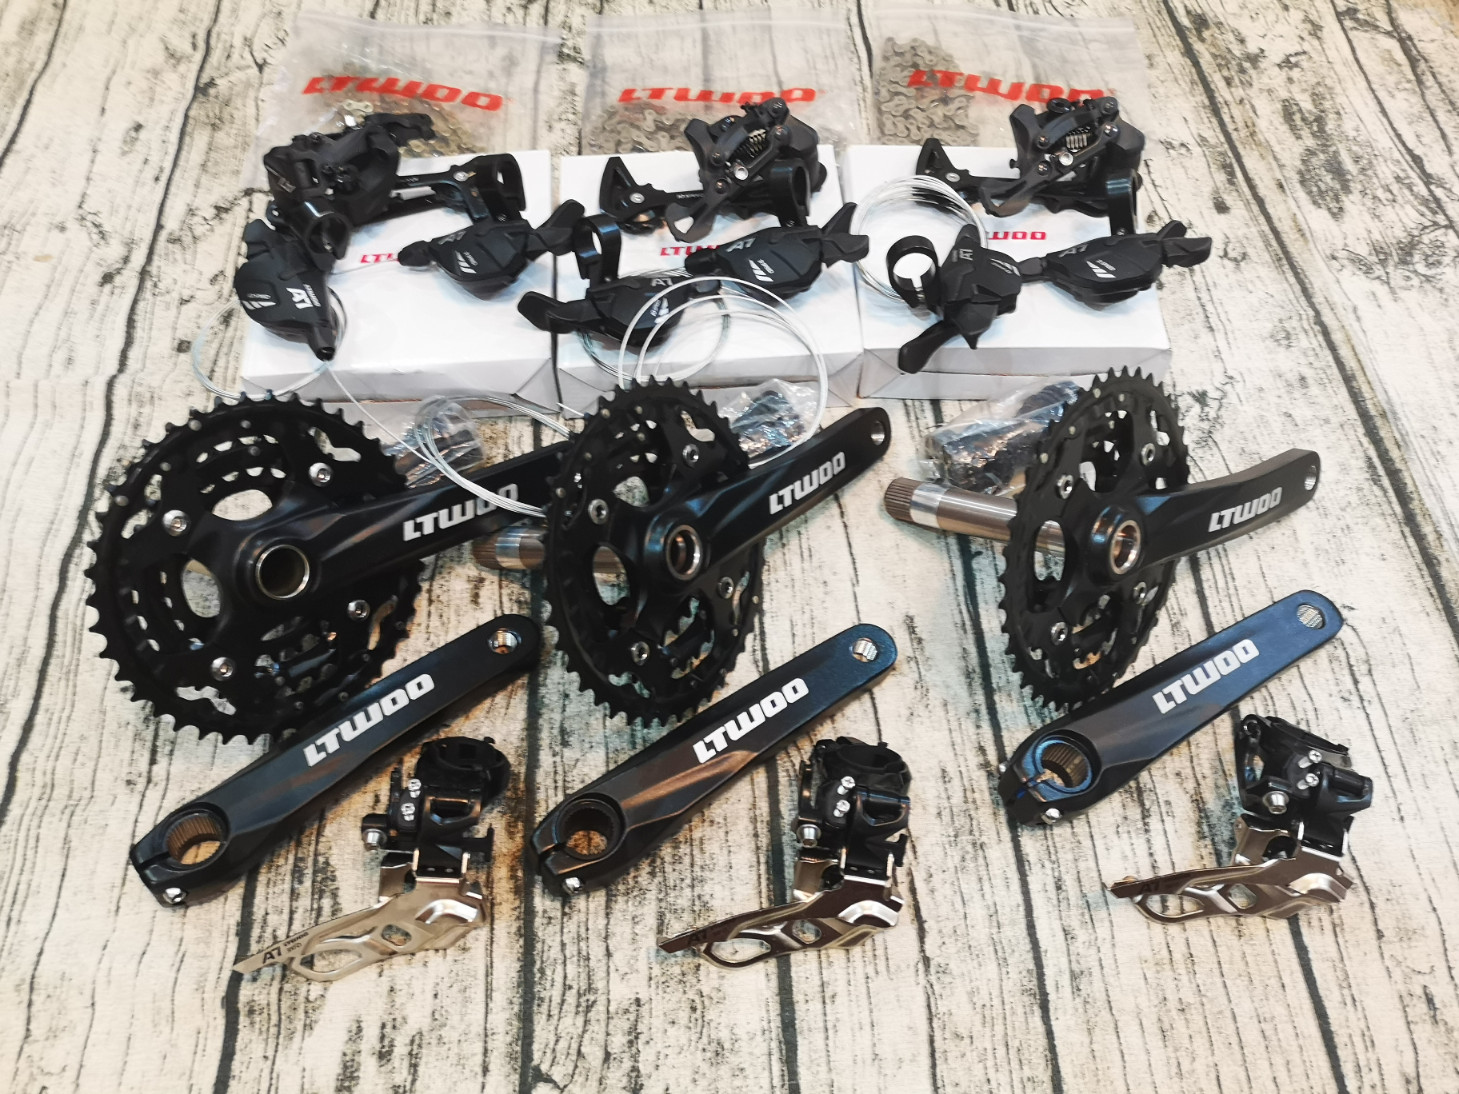 LTWOO 3×10 V-5010 Arrow MTB Groupset 30s 11-46T